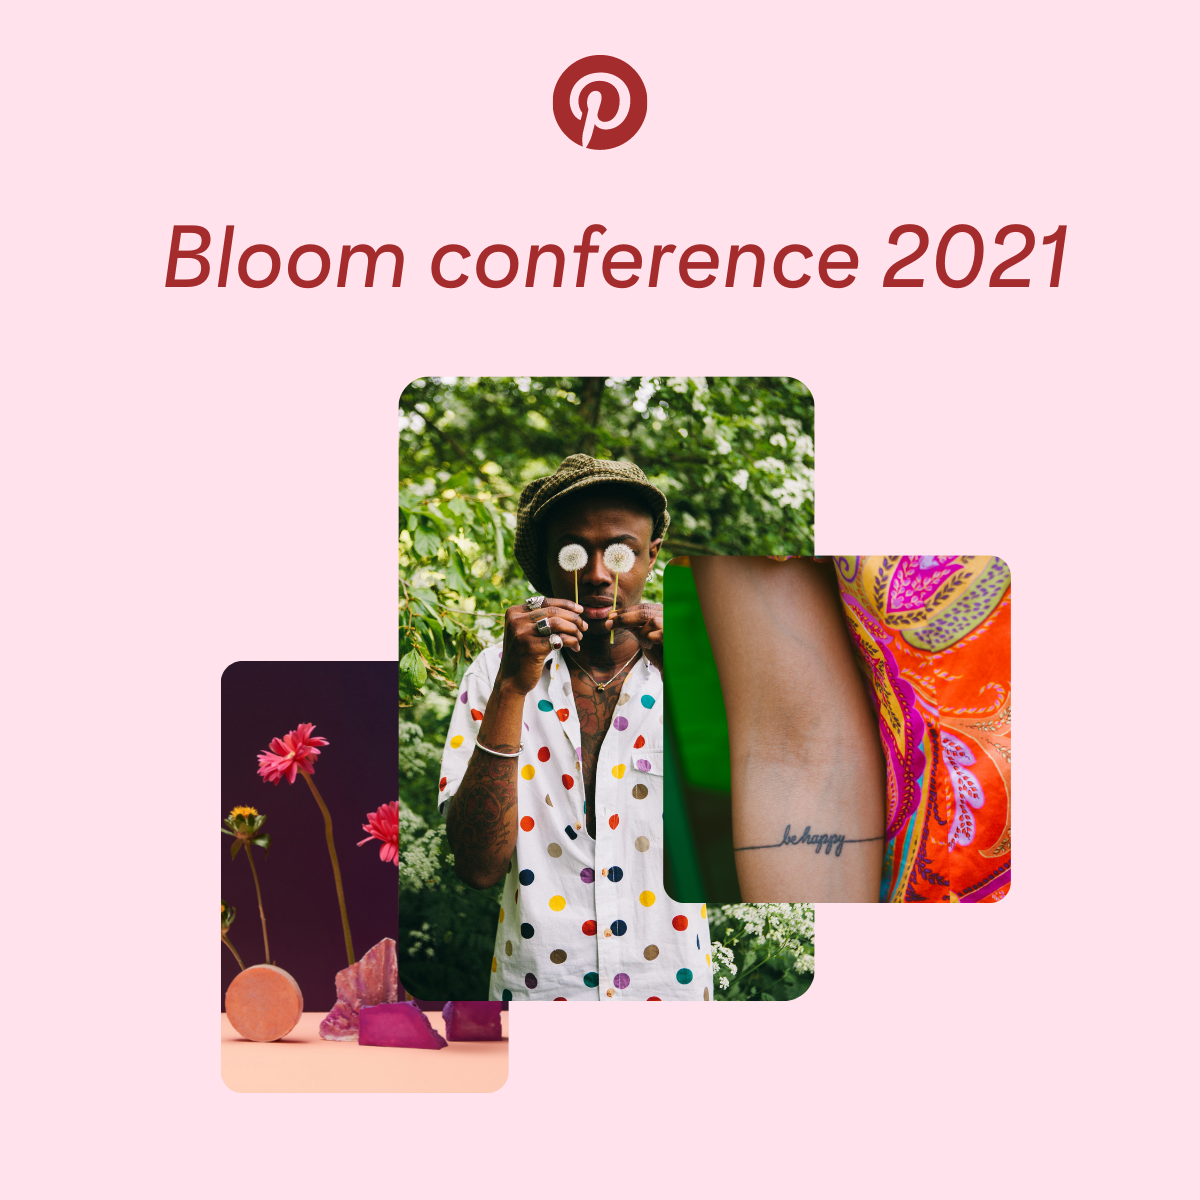 Bloom conference 2021